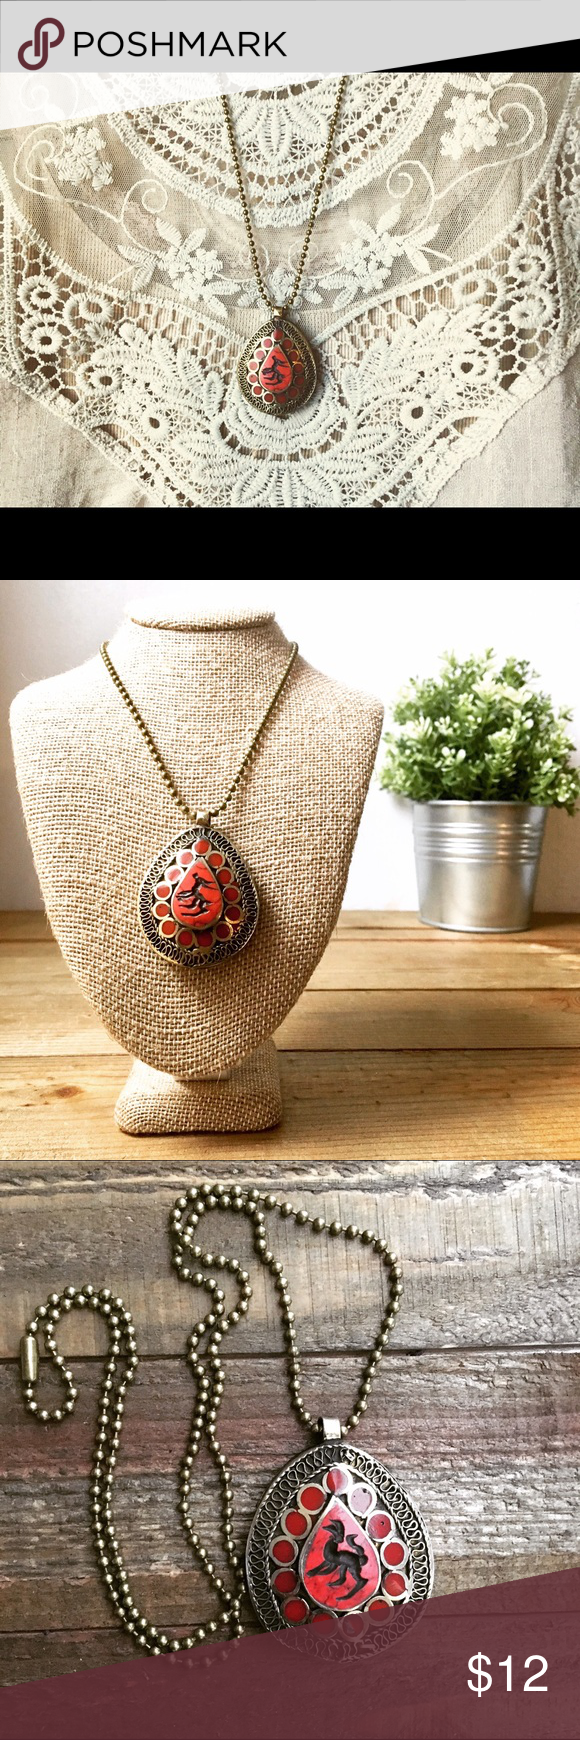 Final price boho tribal kuchi pendant necklace a reclaimed kuchi final price boho tribal kuchi pendant necklace a reclaimed kuchi style tribal pendant on 25 brass ball chain details reclaimed alpaca silver toned aloadofball Gallery